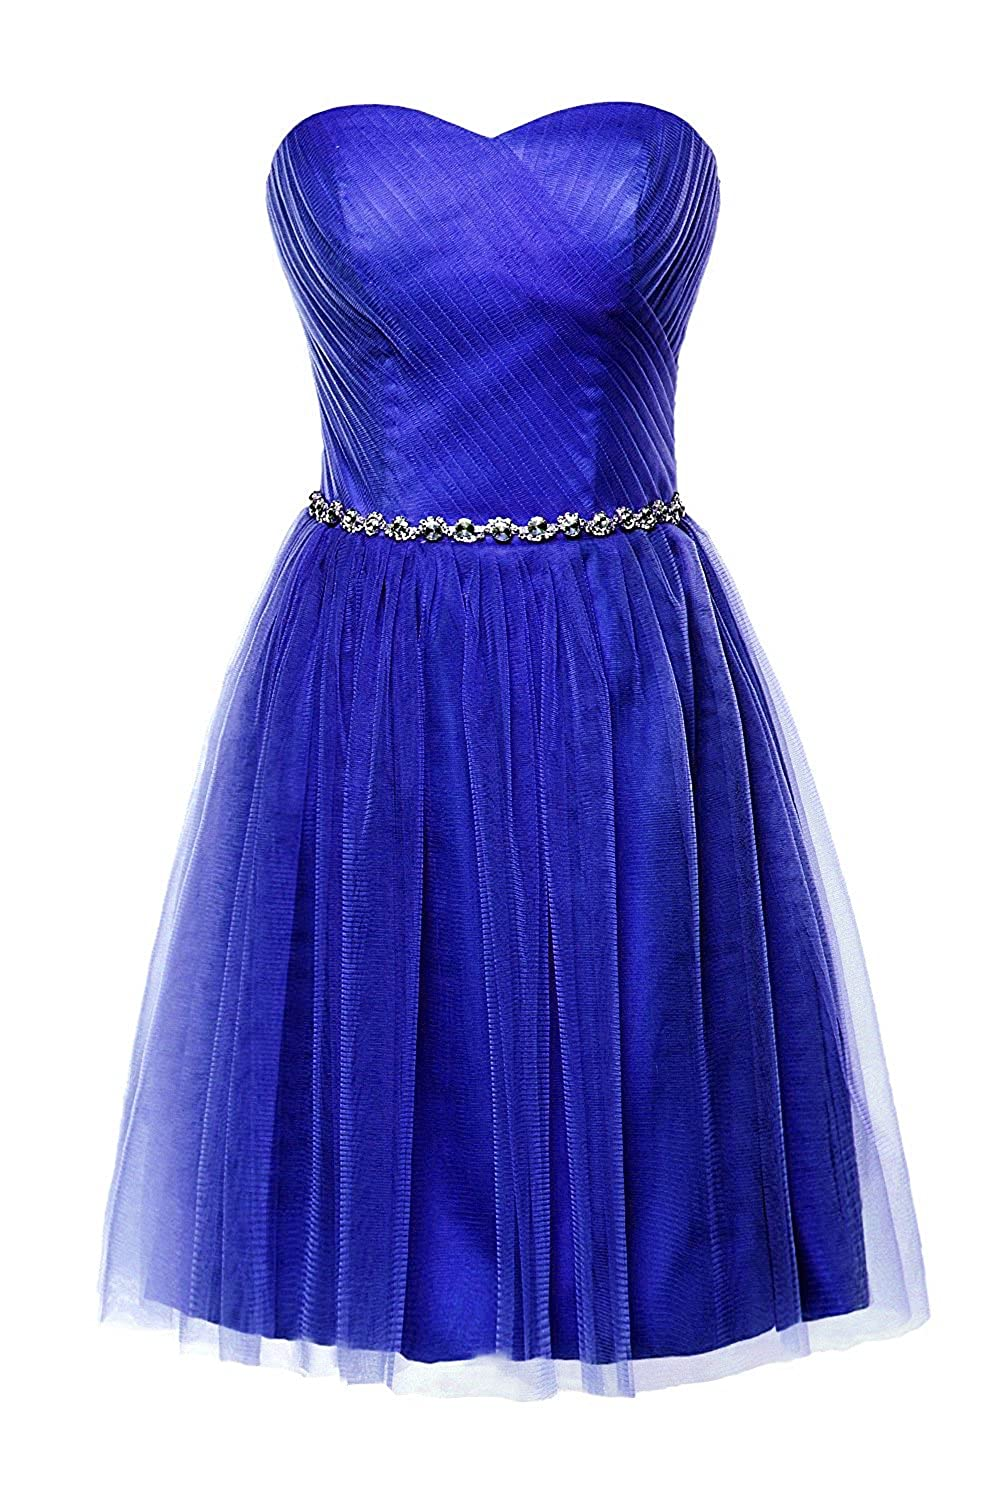 Royal bluee Victoria Prom Women Short Bridesmaid Dress for Junior Sweetheart Beads Girls Party